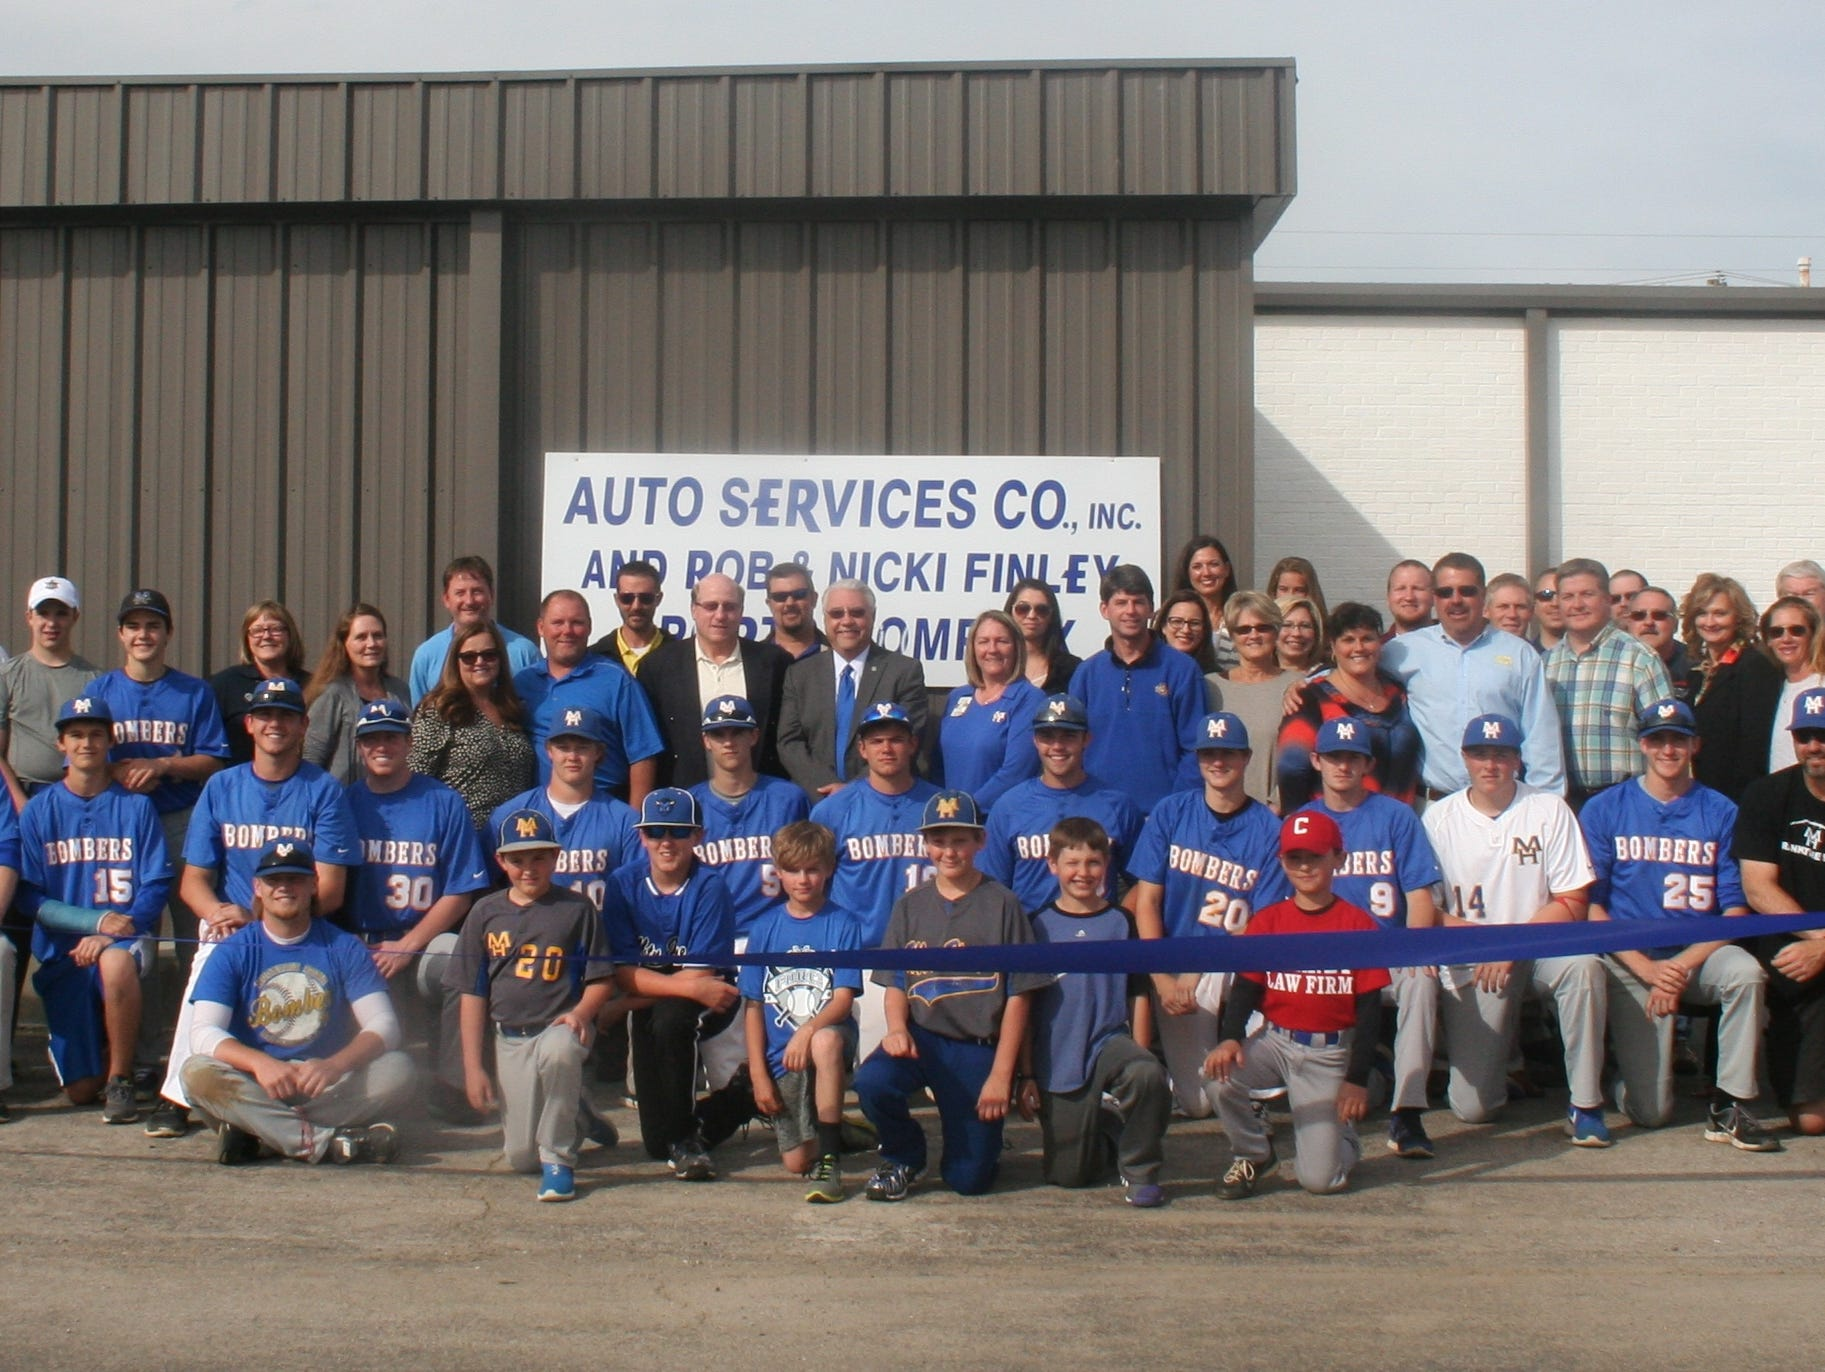 A ribbon-cutting ceremony for the Auto Services Company, Inc. and Rob and Nicki Finley Indoor Sports Facility was held on Monday. The facility offers video pitching simulators for baseball and softball in an 18,000 square foot building.